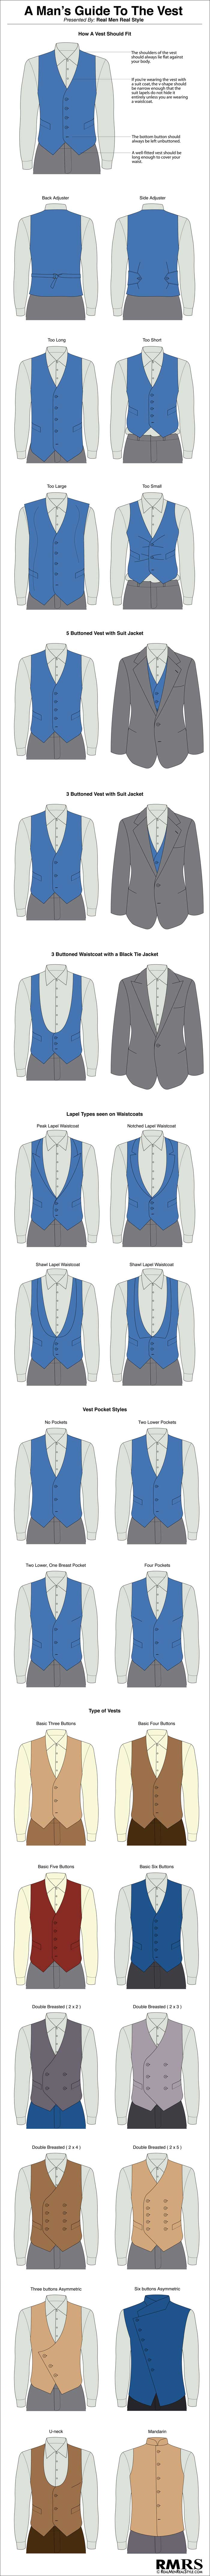 A-Mans-Guide-To-The-Vest-Infographic-700